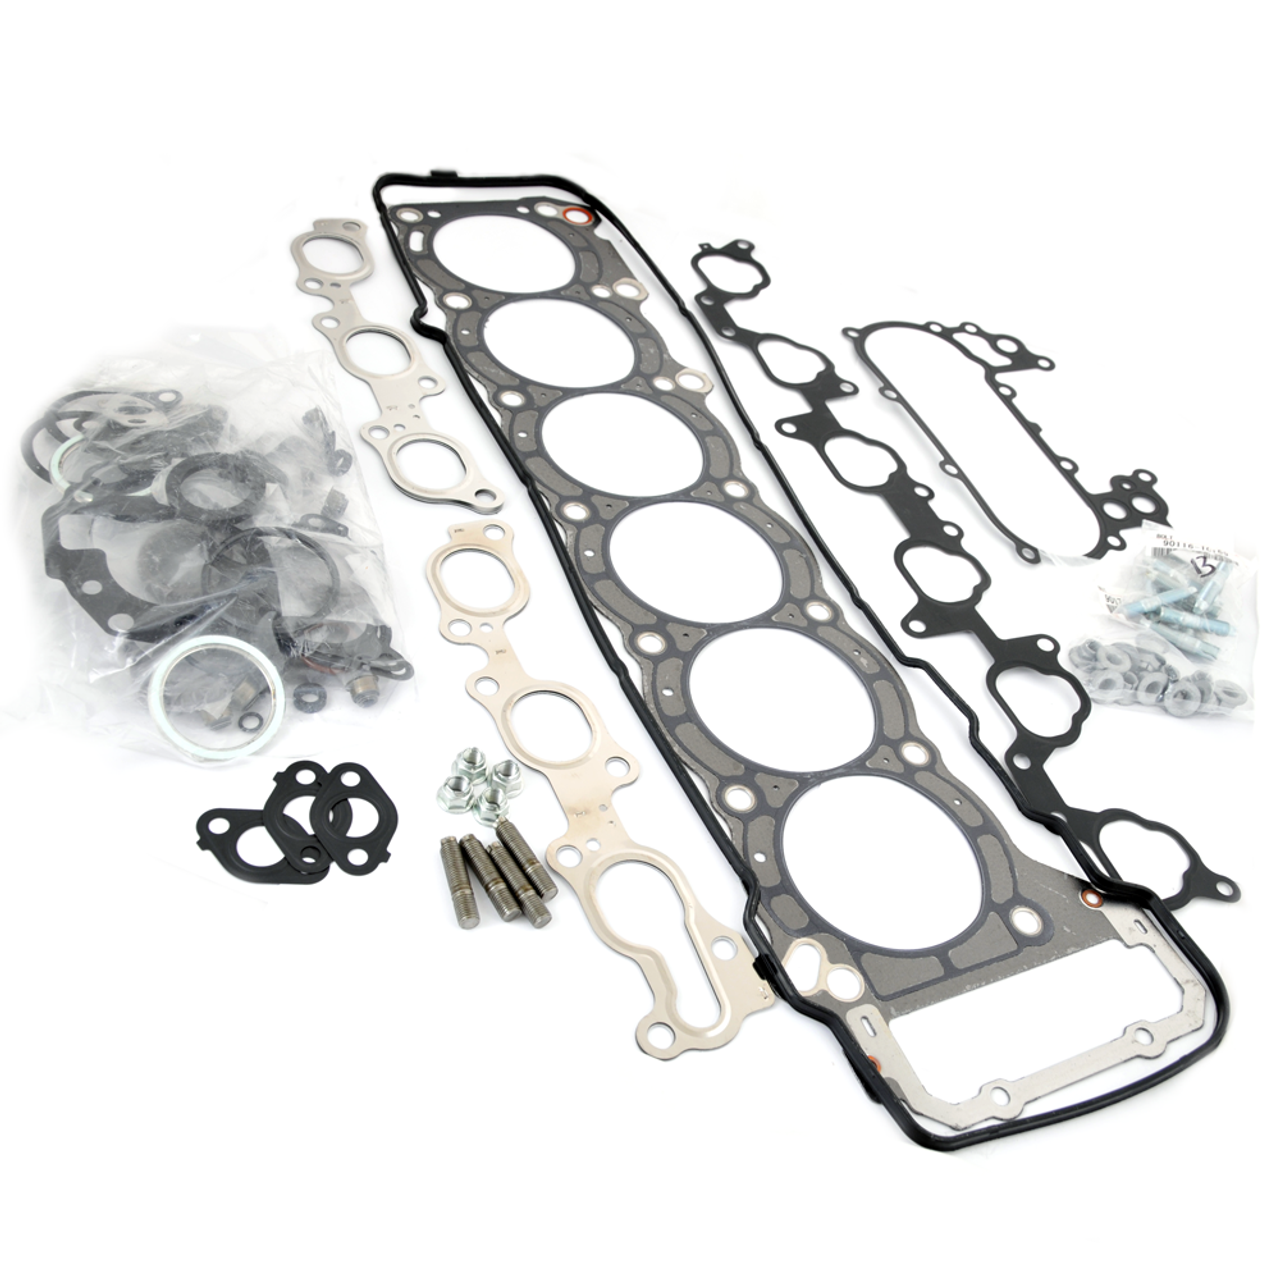 80 Series 1FZ Complete Head Gasket Kit (HGK-1FZ)